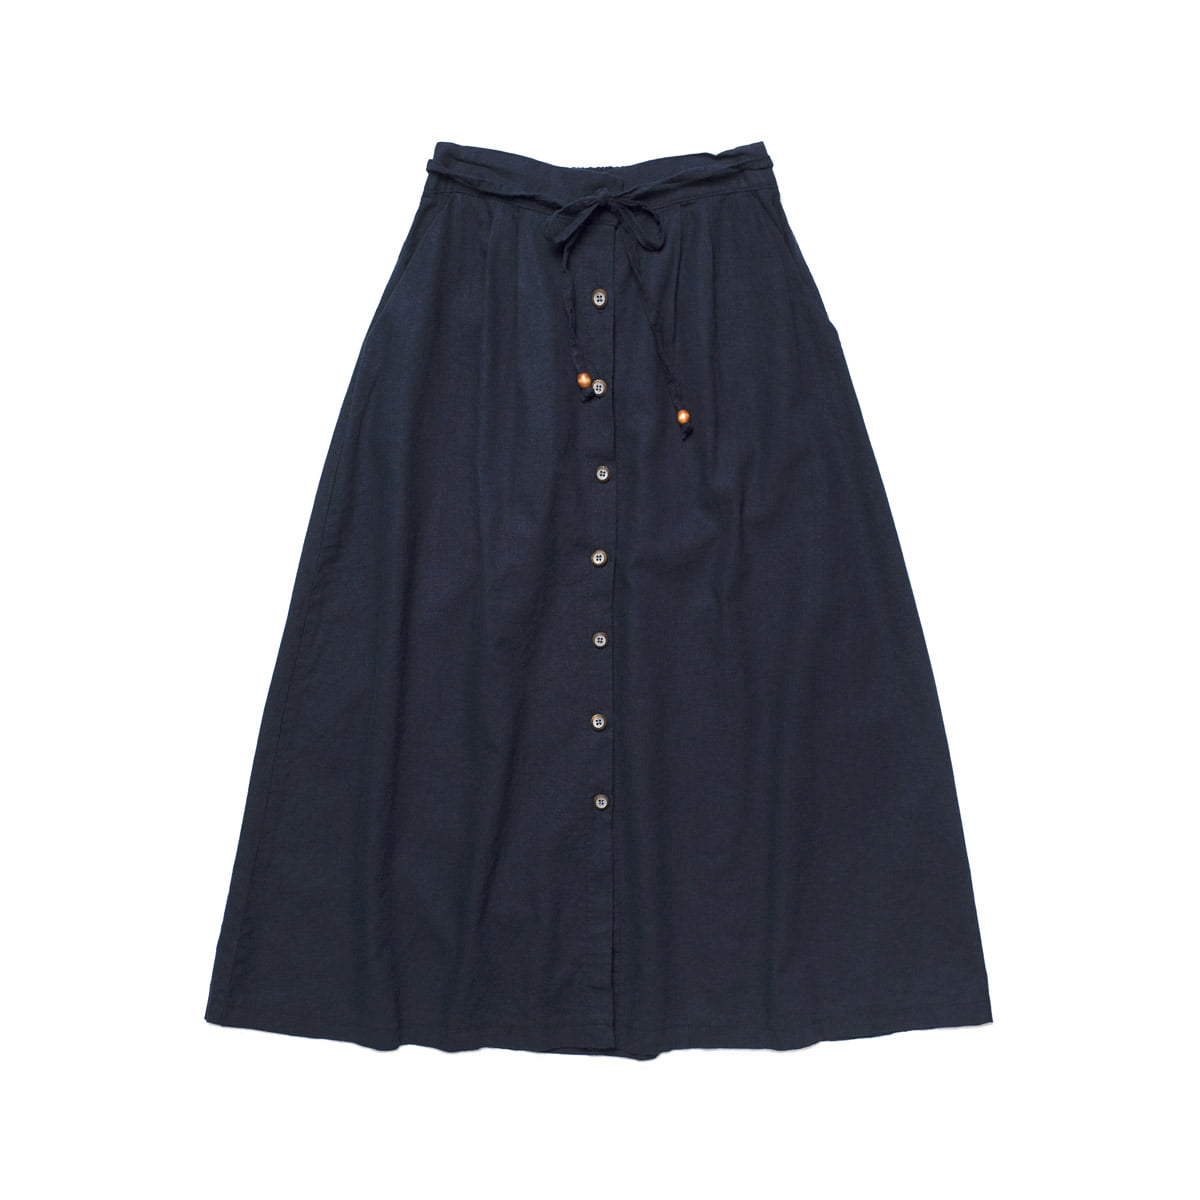 [CHIQUITA] L 2018 LINEN OPEN SKIRT 'NAVY'